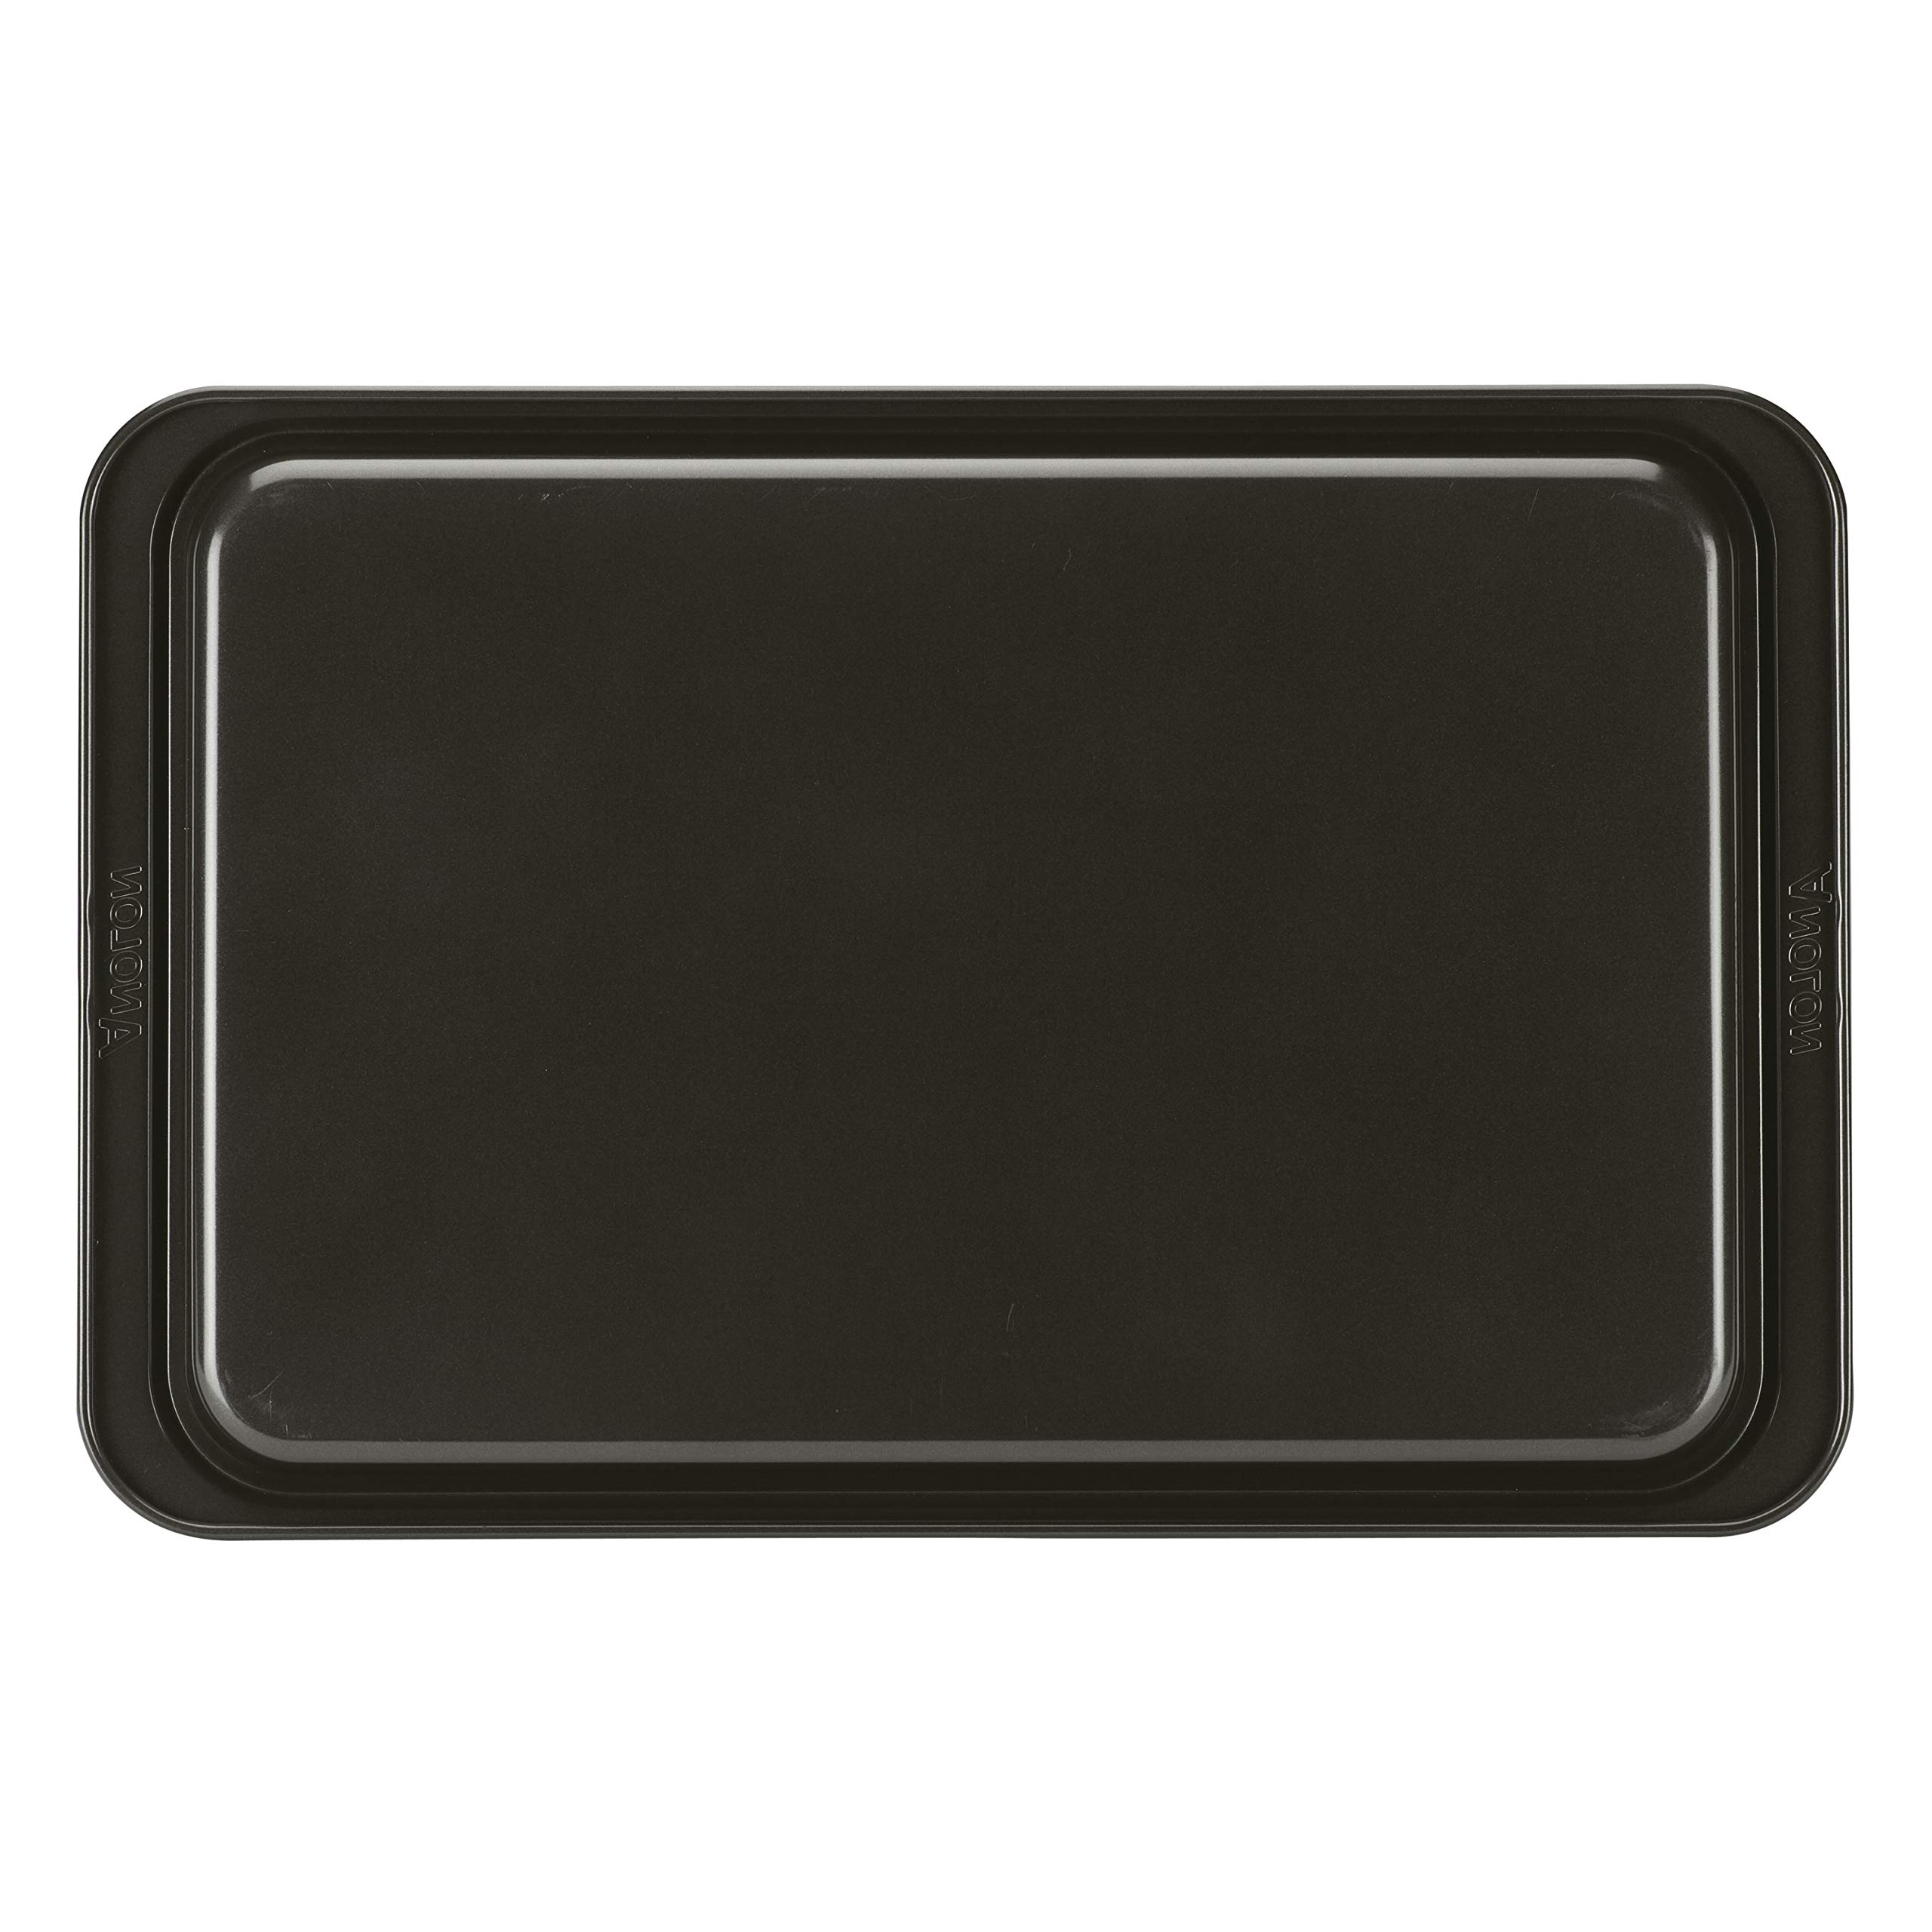 Anolon Eminence Nonstick Bakeware Cookie Pan, 11-Inch x 17-Inch, Onyx with Umber Interior by Anolon (Image #3)